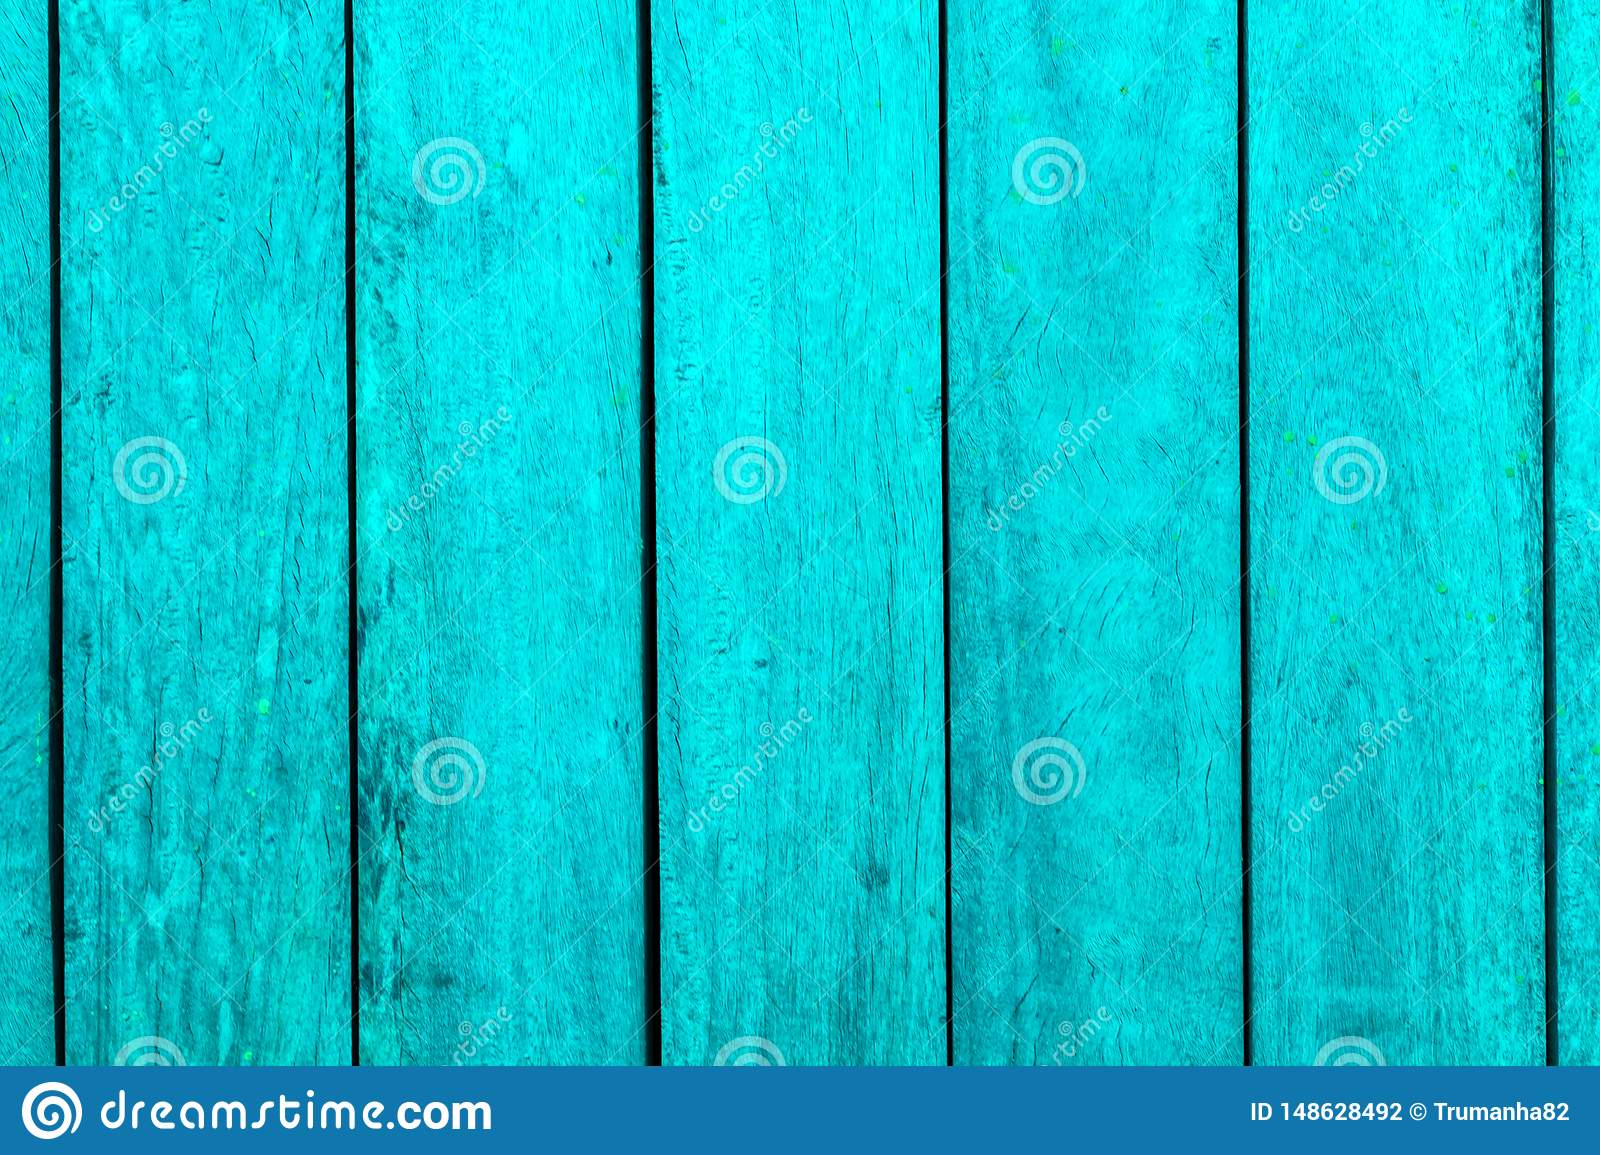 Vertical Turquoise Wooden Bars Texture Background